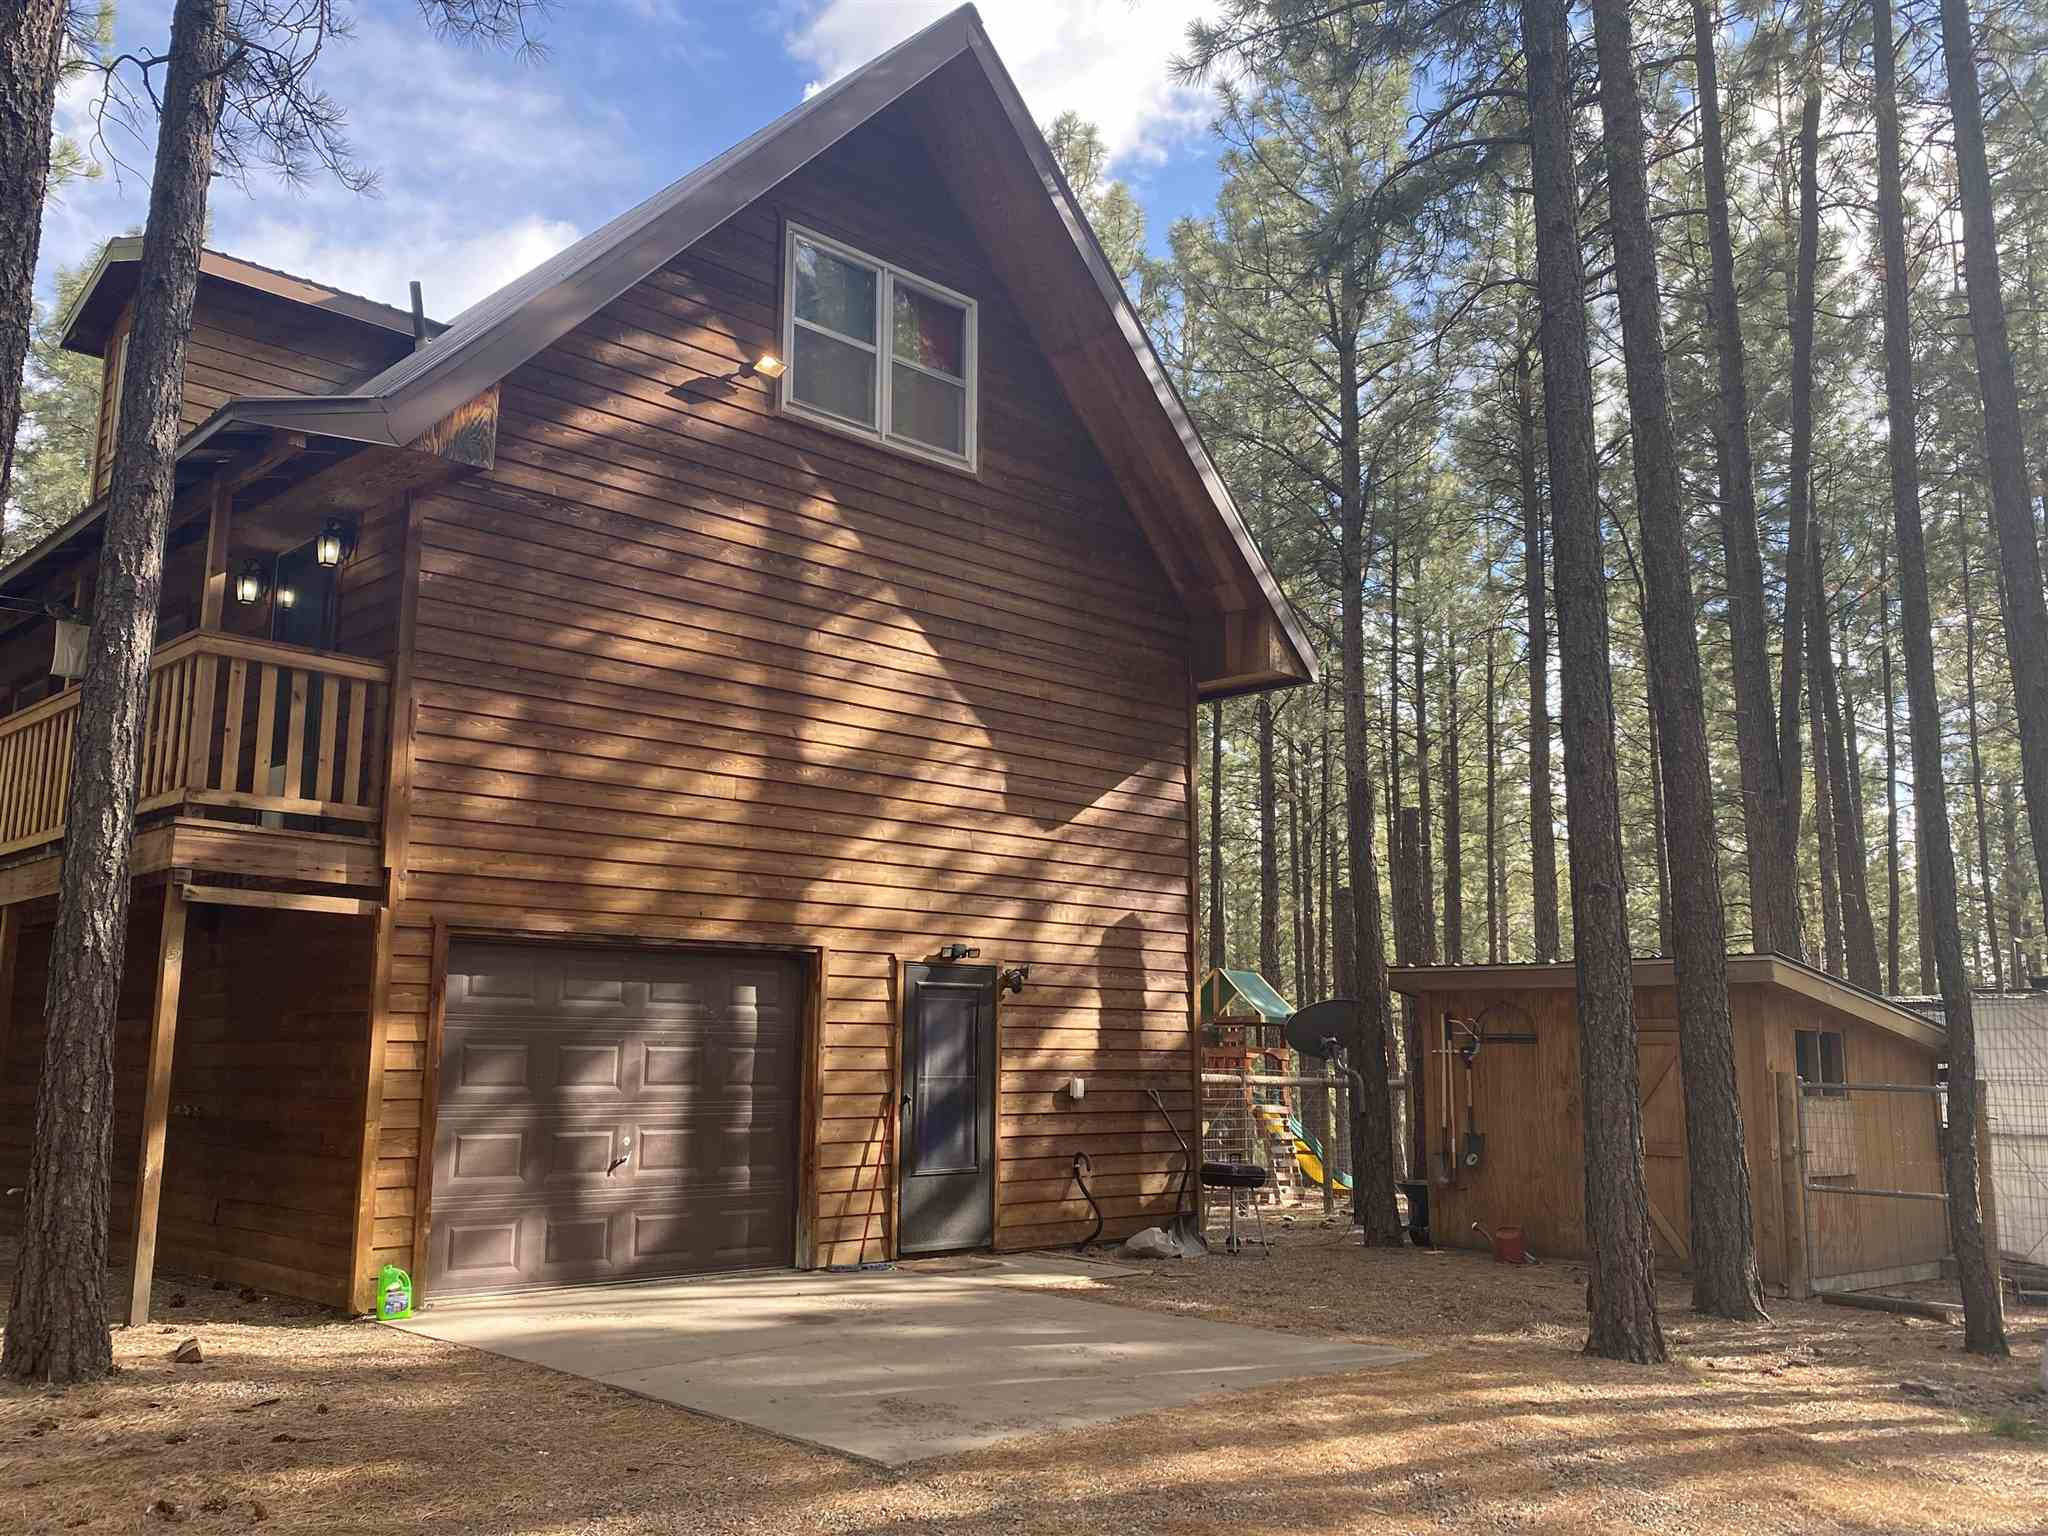 Just a short beautiful scenic drive from Los Alamos sits this amazing mountain home located among the ponderosa pines.  This 3 story gem features 4 bedroom and 2 bathrooms as well as a large workshop and bonus room on the garage level.  The large wrap around deck, fenced in yard and large chicken coop are just a few more features that make this such a great find!